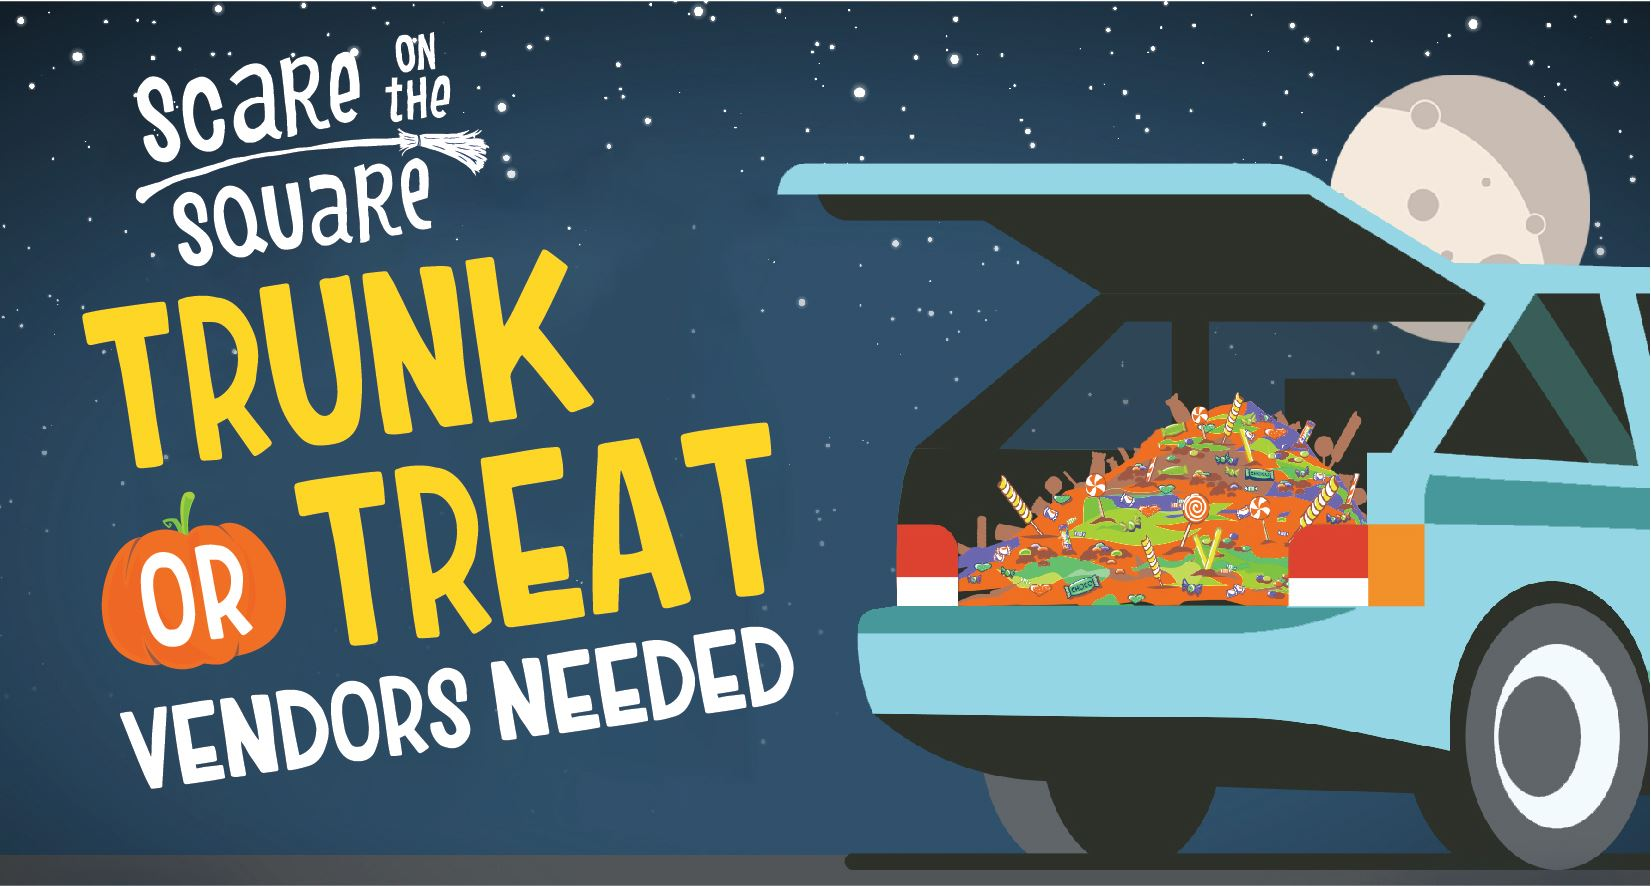 Trunk or Treat Vendors Needed